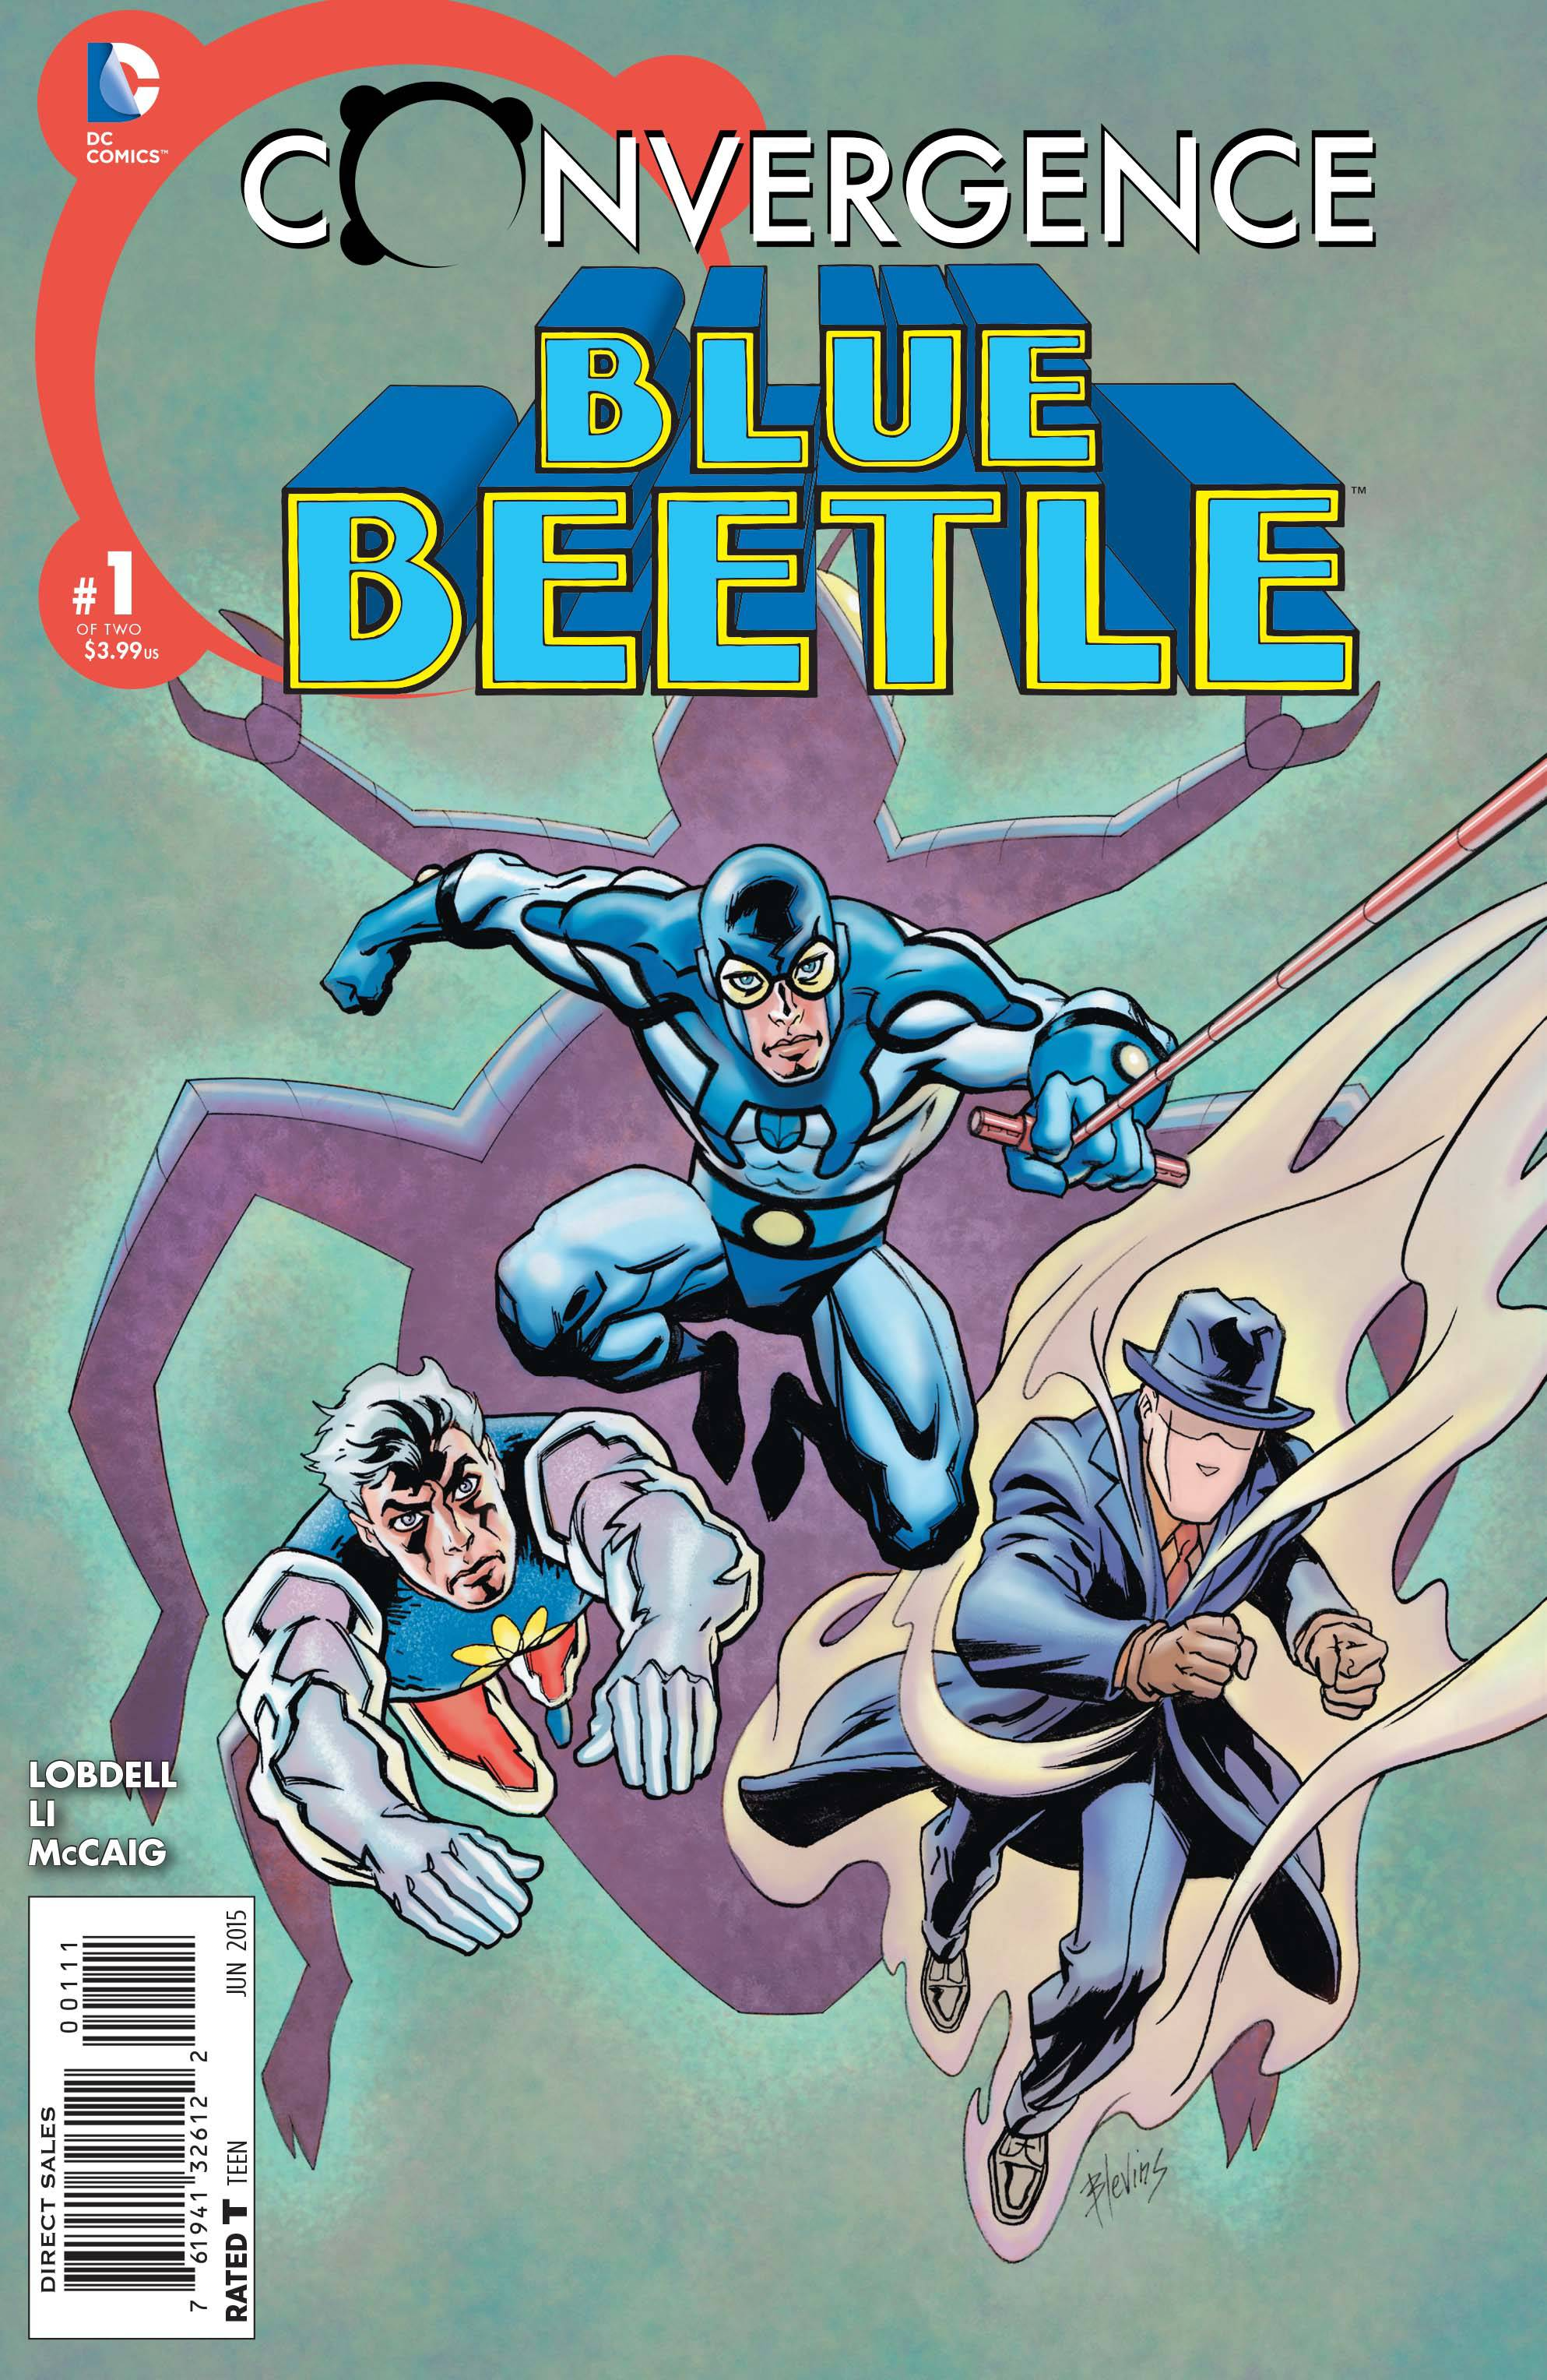 Covergence Blue Beetle #1